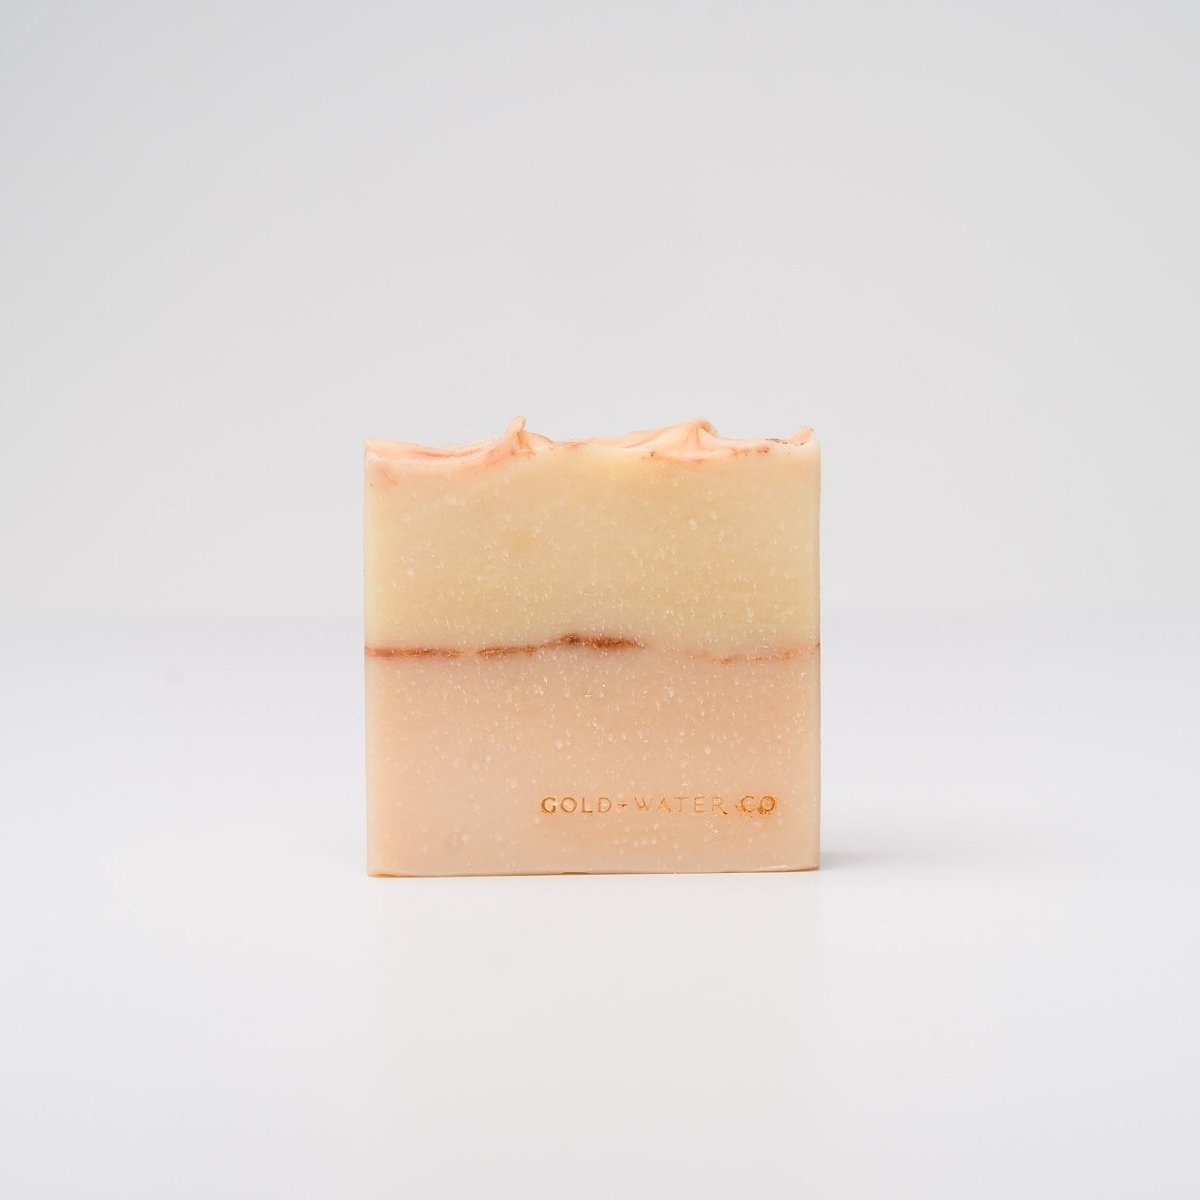 BRIGHT | Handcrafted Soap - GOLD+WATER CO.